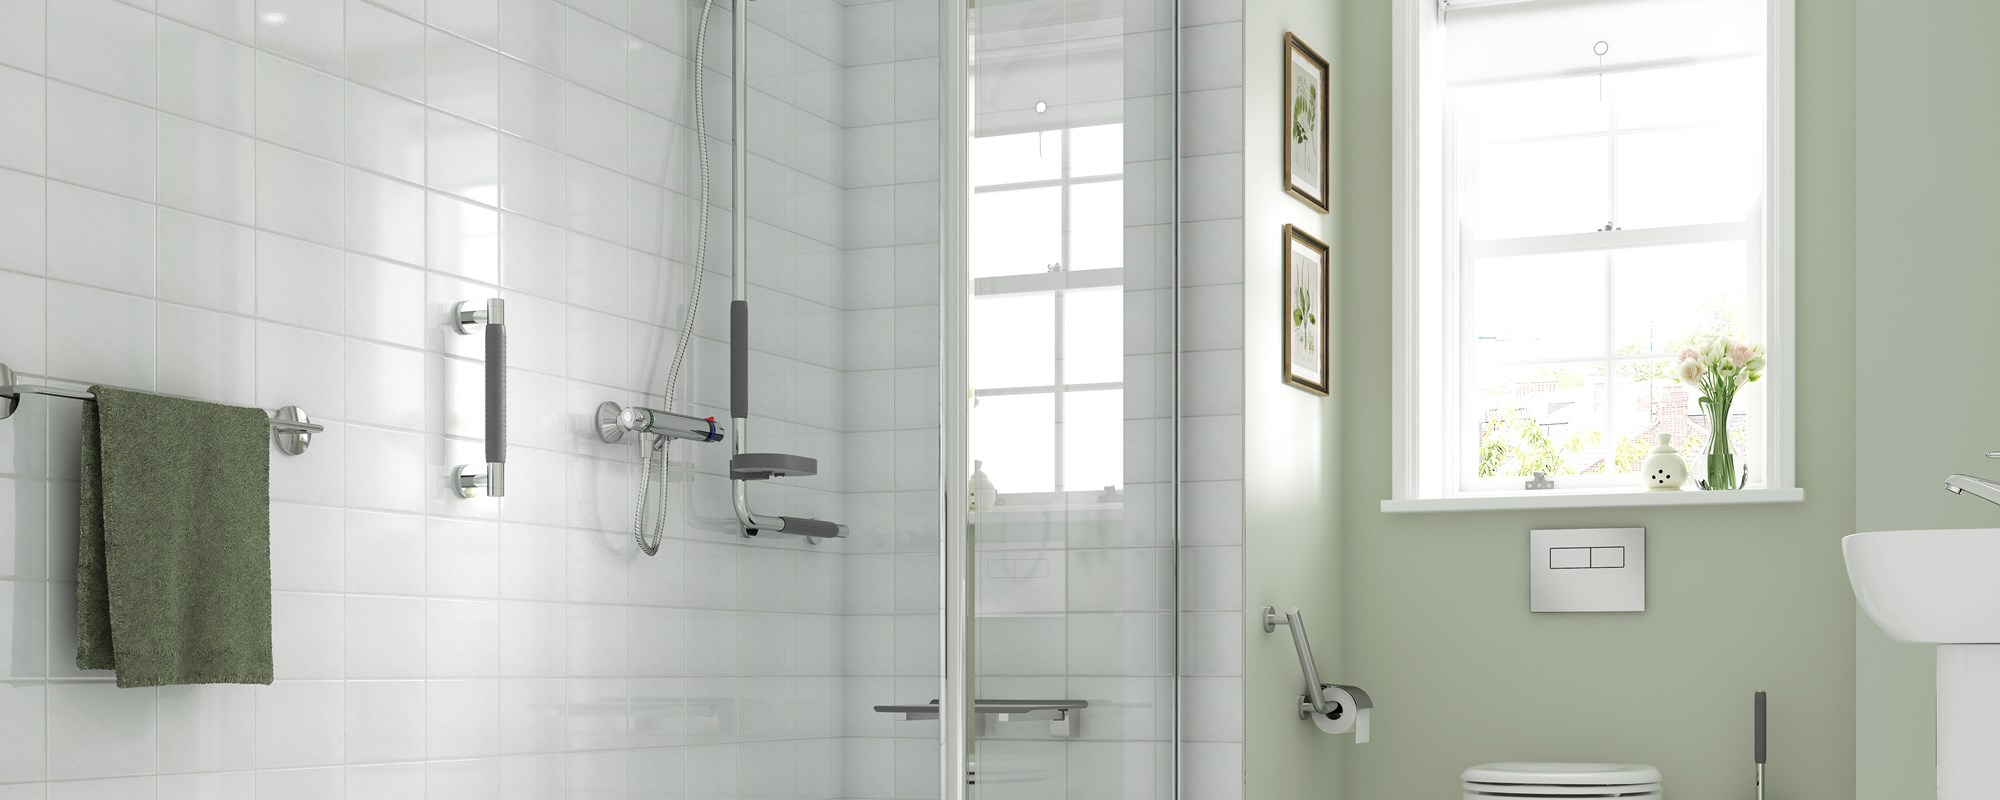 Easy Access Showers for Independent Living